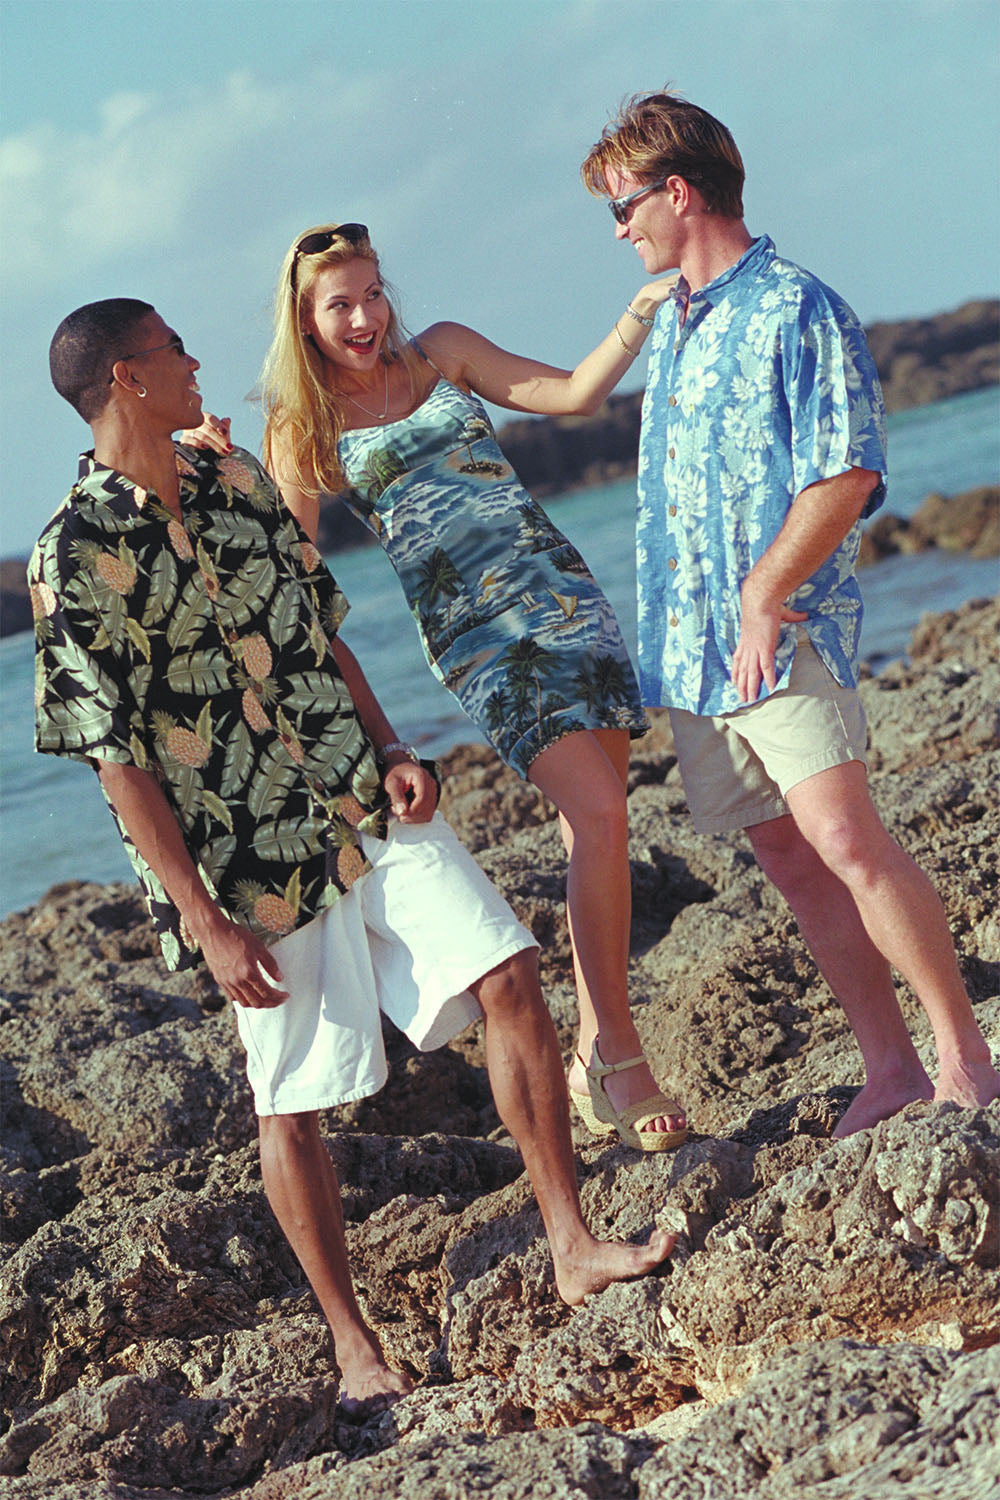 Angel having fun with Casey and Jason in a spaghetti hawaiian dress